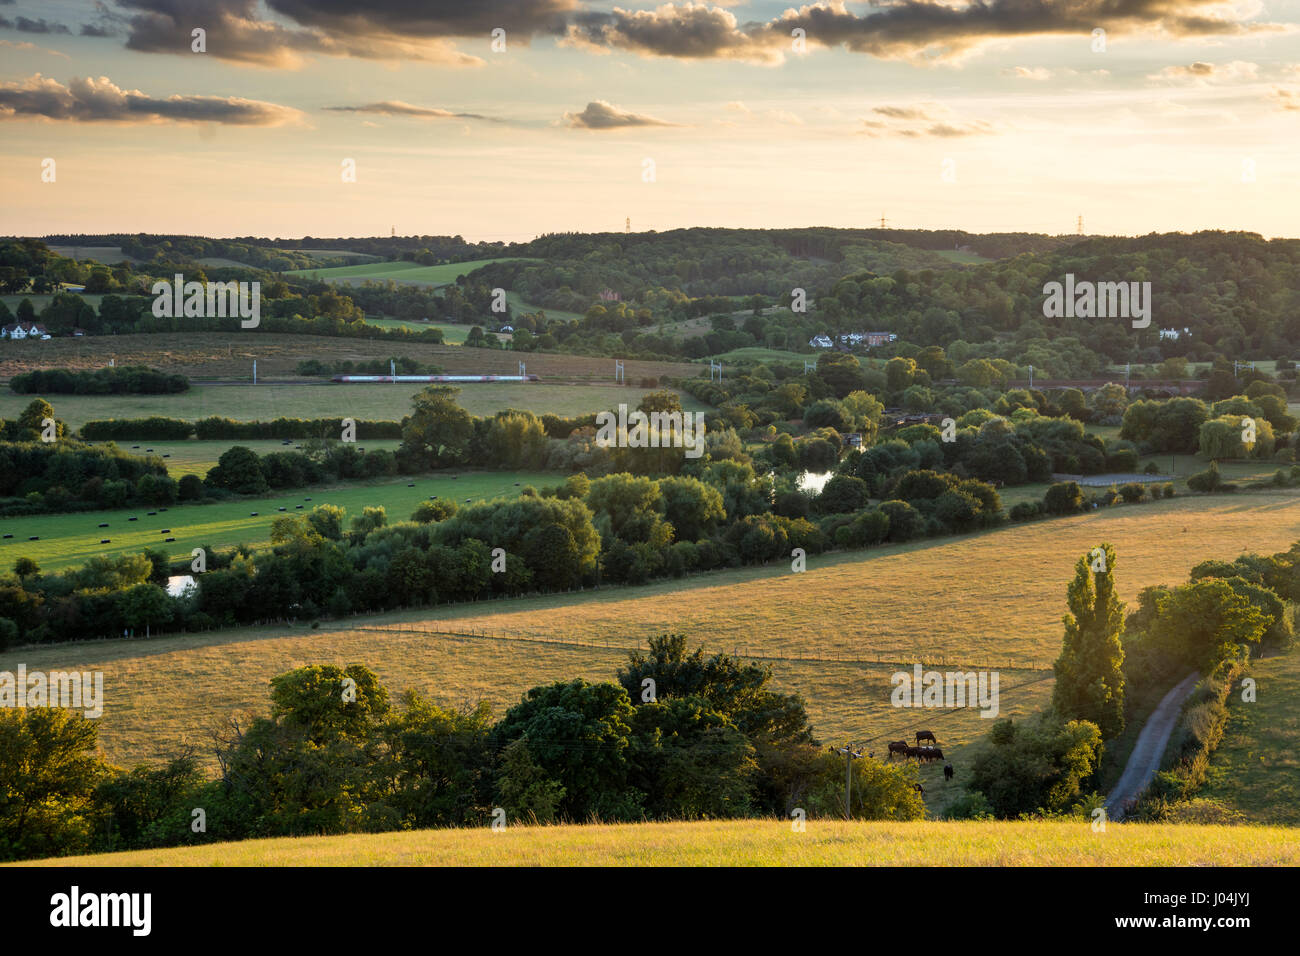 Reading, England, UK - August 29, 2016: A Crosscountry Voyager train at Goring Gap in Berkshire, under new electrification - Stock Image